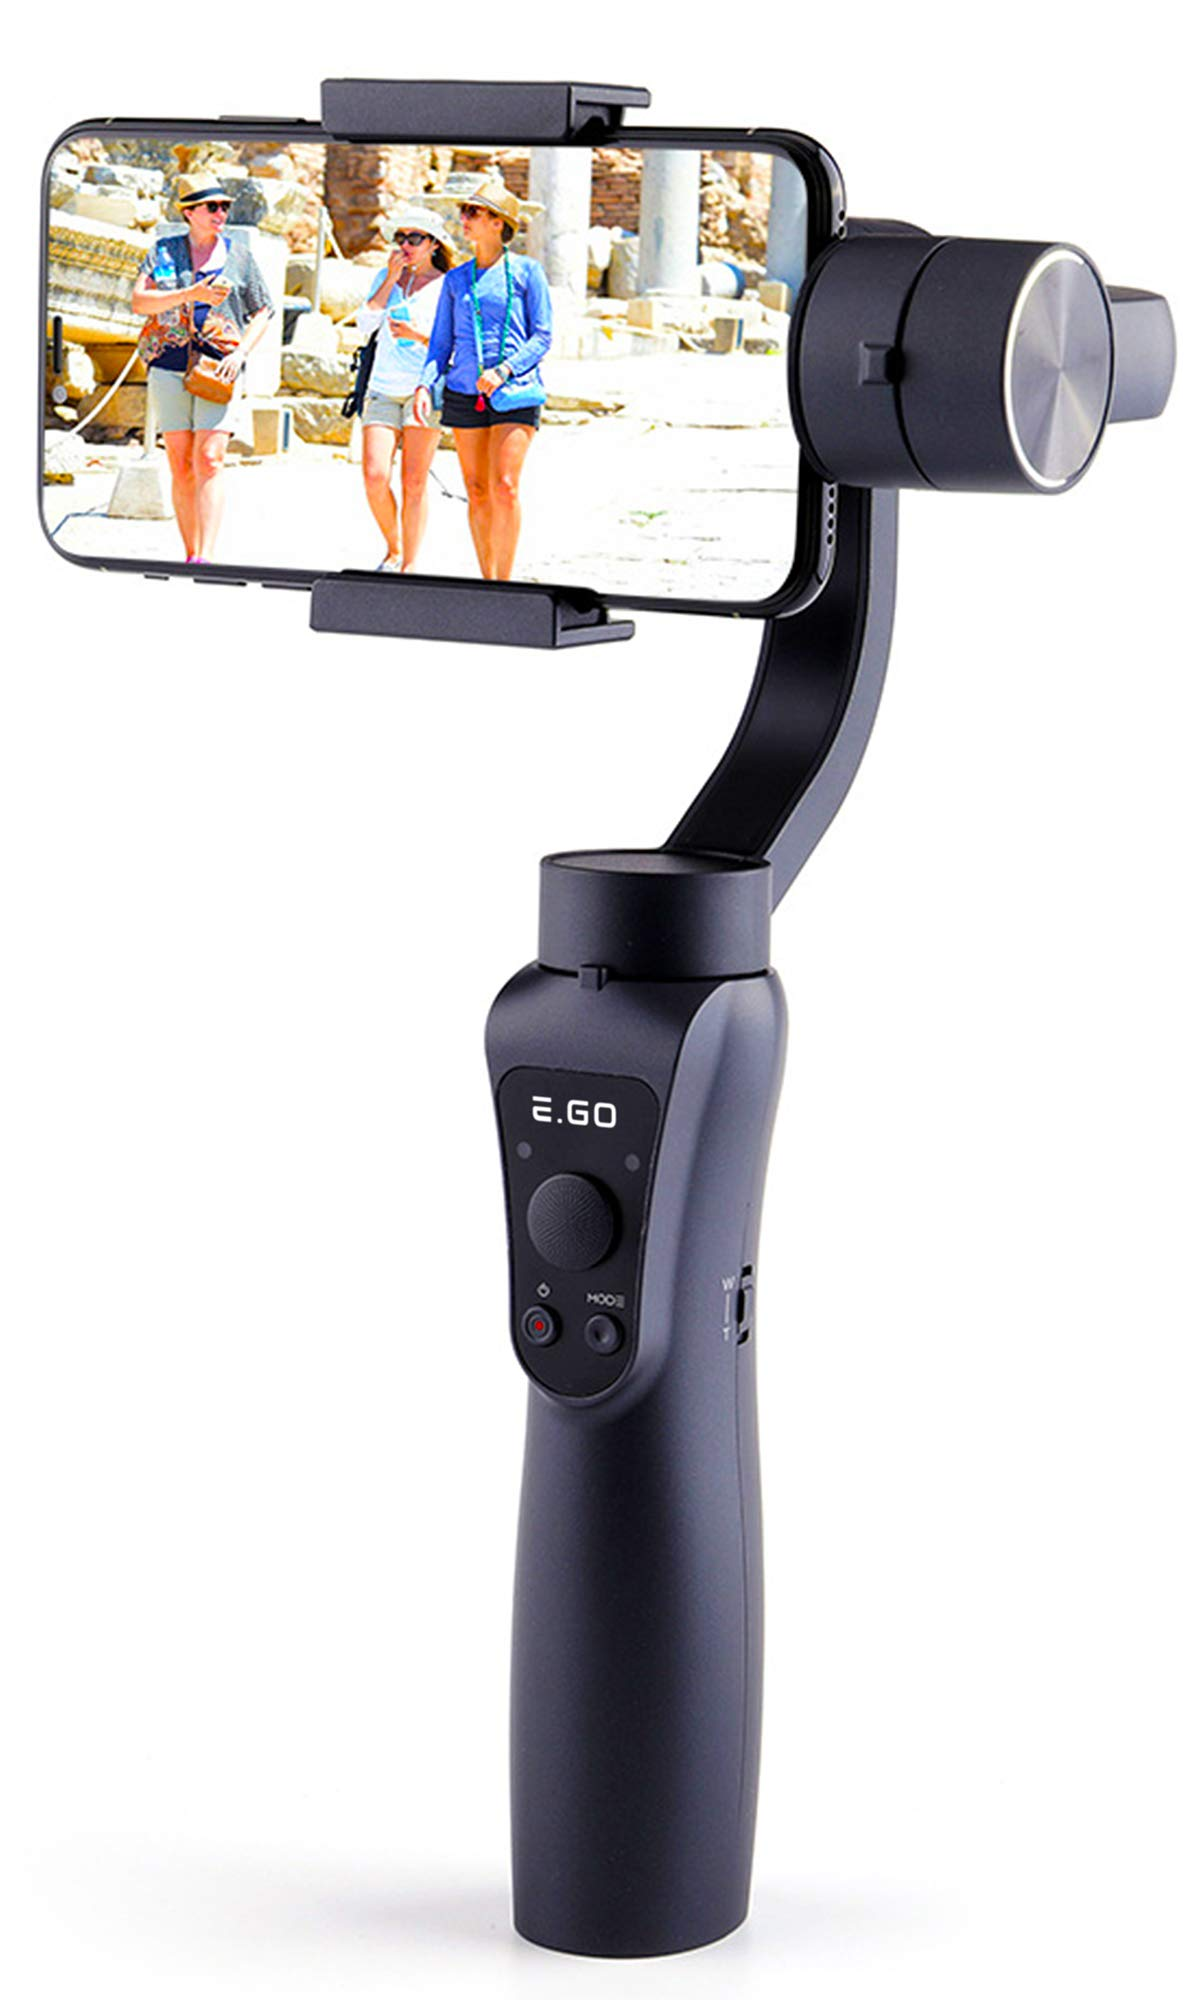 Gimbal Stabilizer for Smartphone Video Recording - Handheld Smooth 4 3-Axis H w/Focus Pull & Zoom - for iPhone Xs Max Xr X 8 Plus 7 6 SE - Samsung Galaxy S9+ S9 S8+ S8 S7 S6 Q2 Edge by EGO